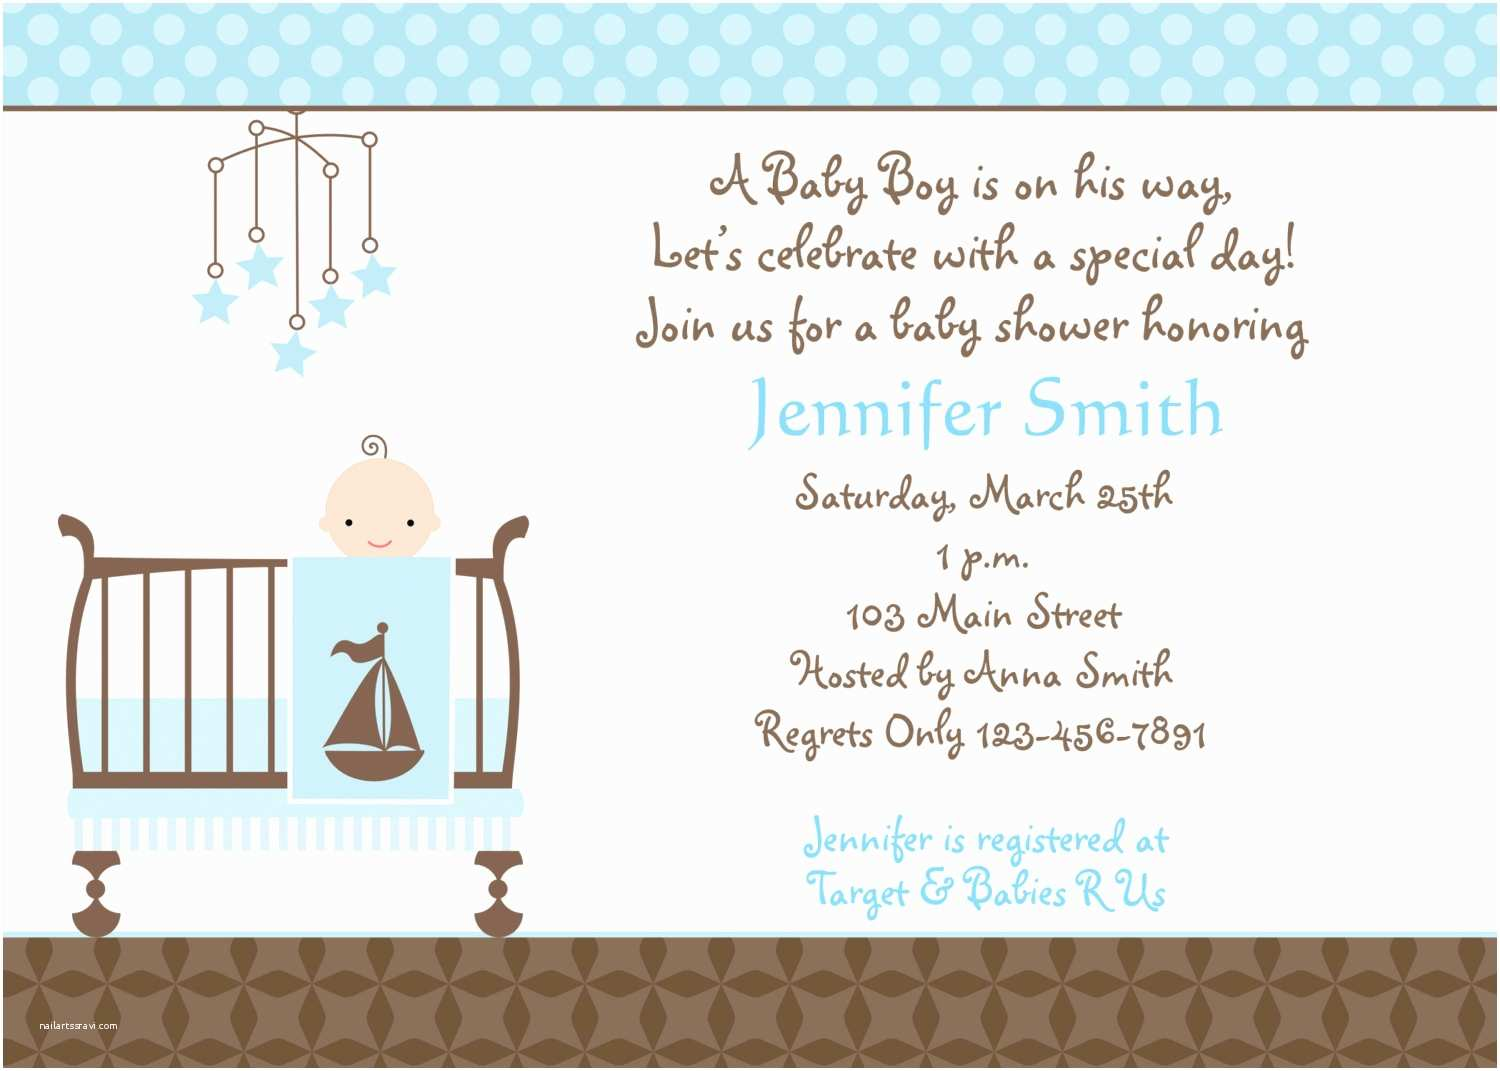 Baby Shower Invitations Party City Template Baby Shower Invitations for Boy Party City Baby